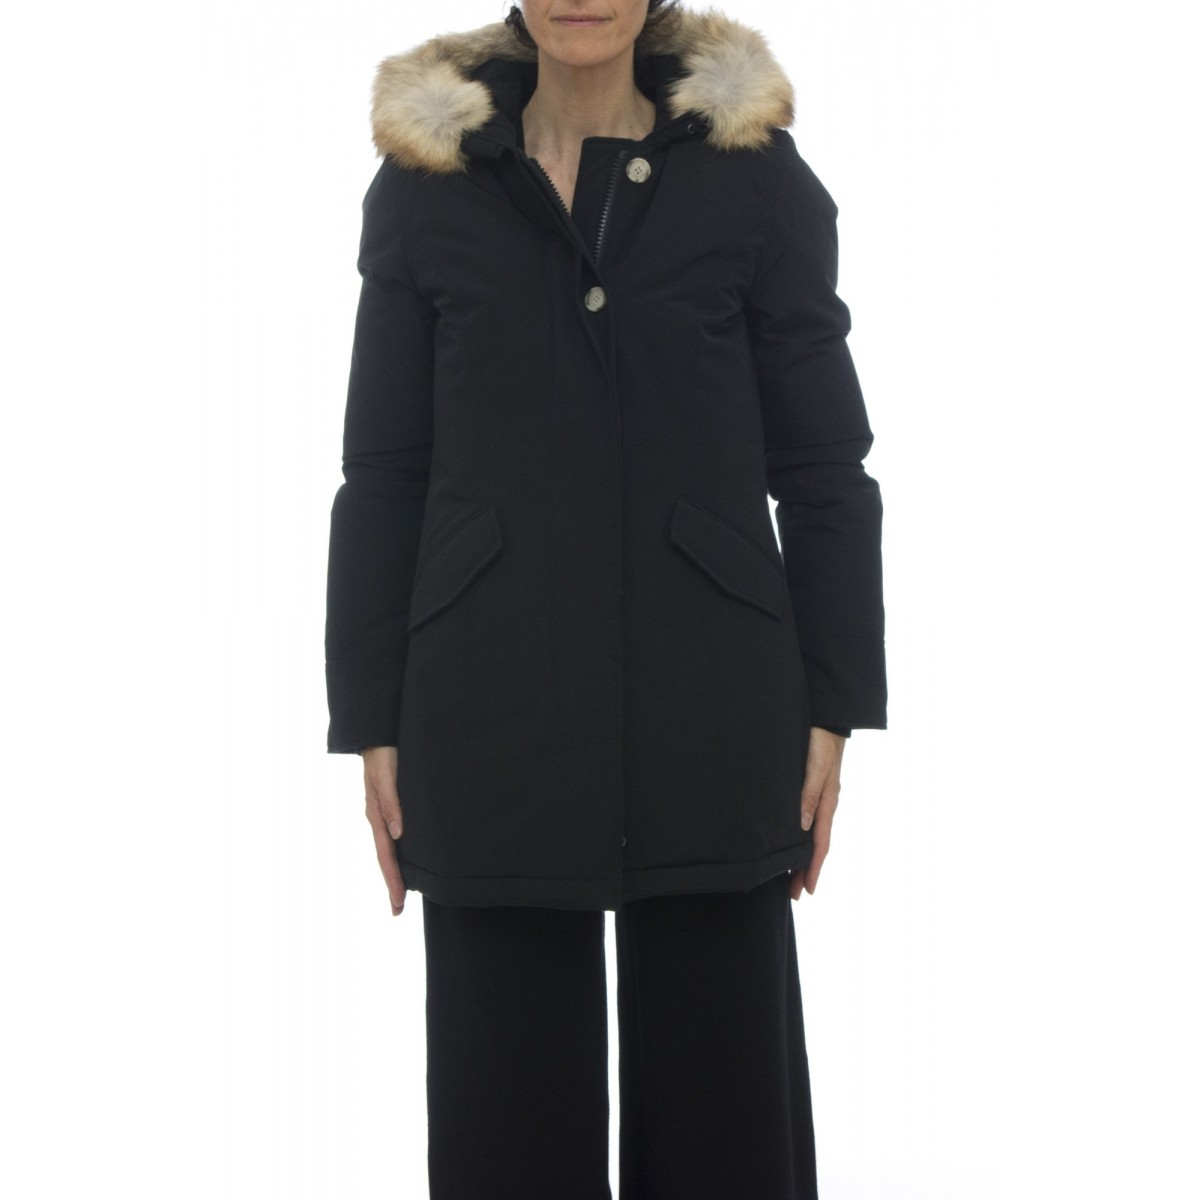 Piumino - Ww cps1446 cn02 woman artic parka